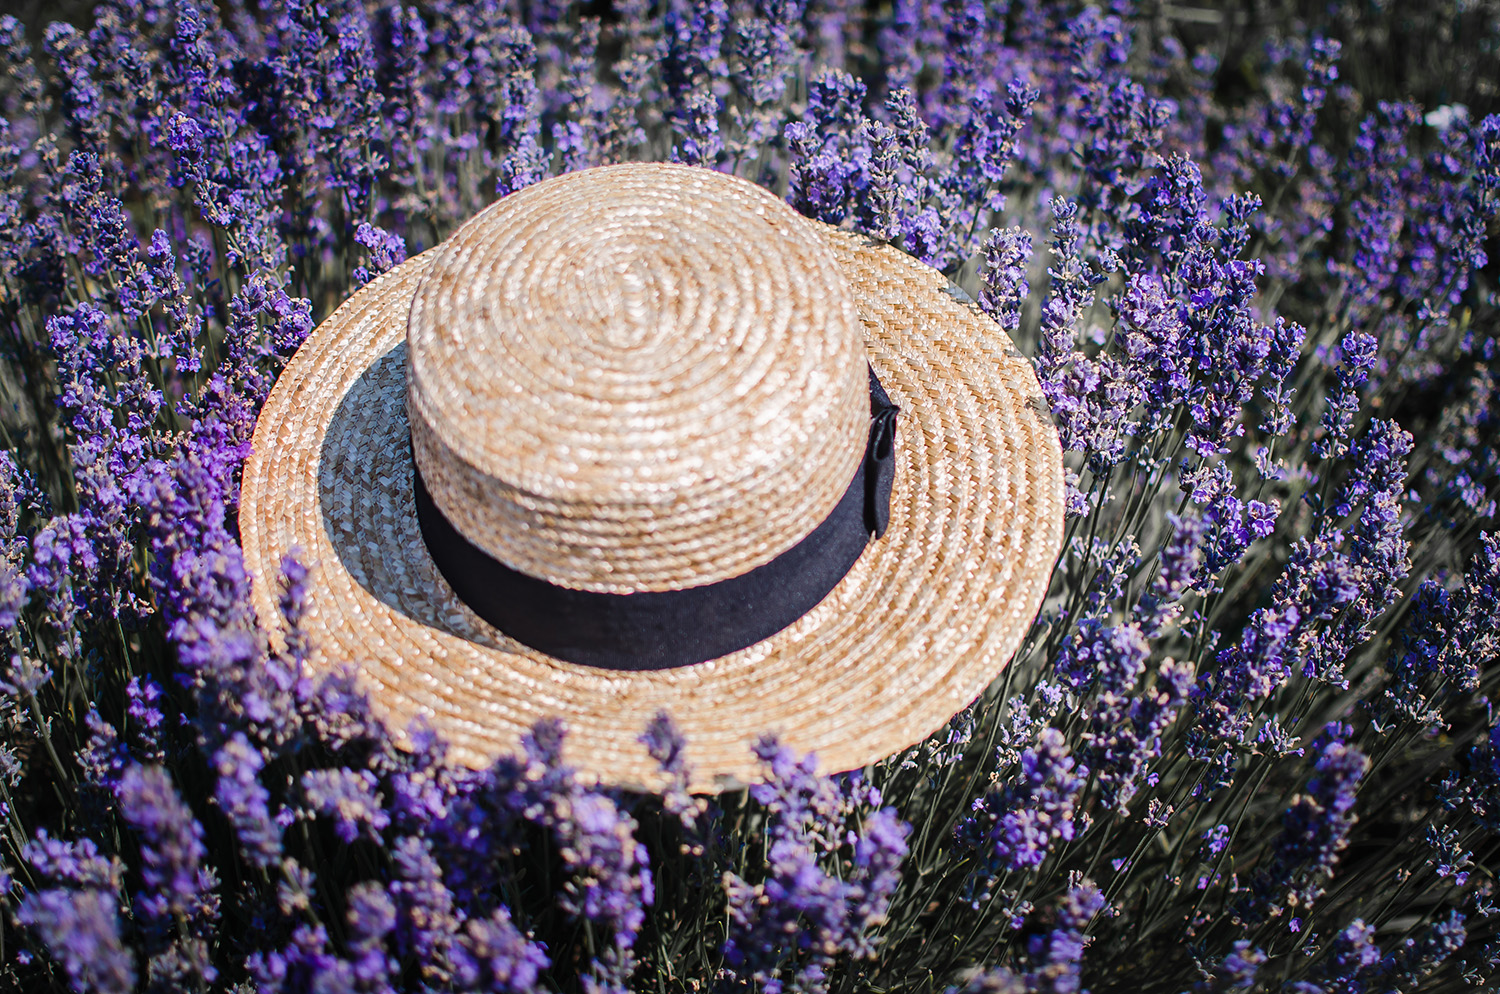 straw hat lavender field anotherside of me blog